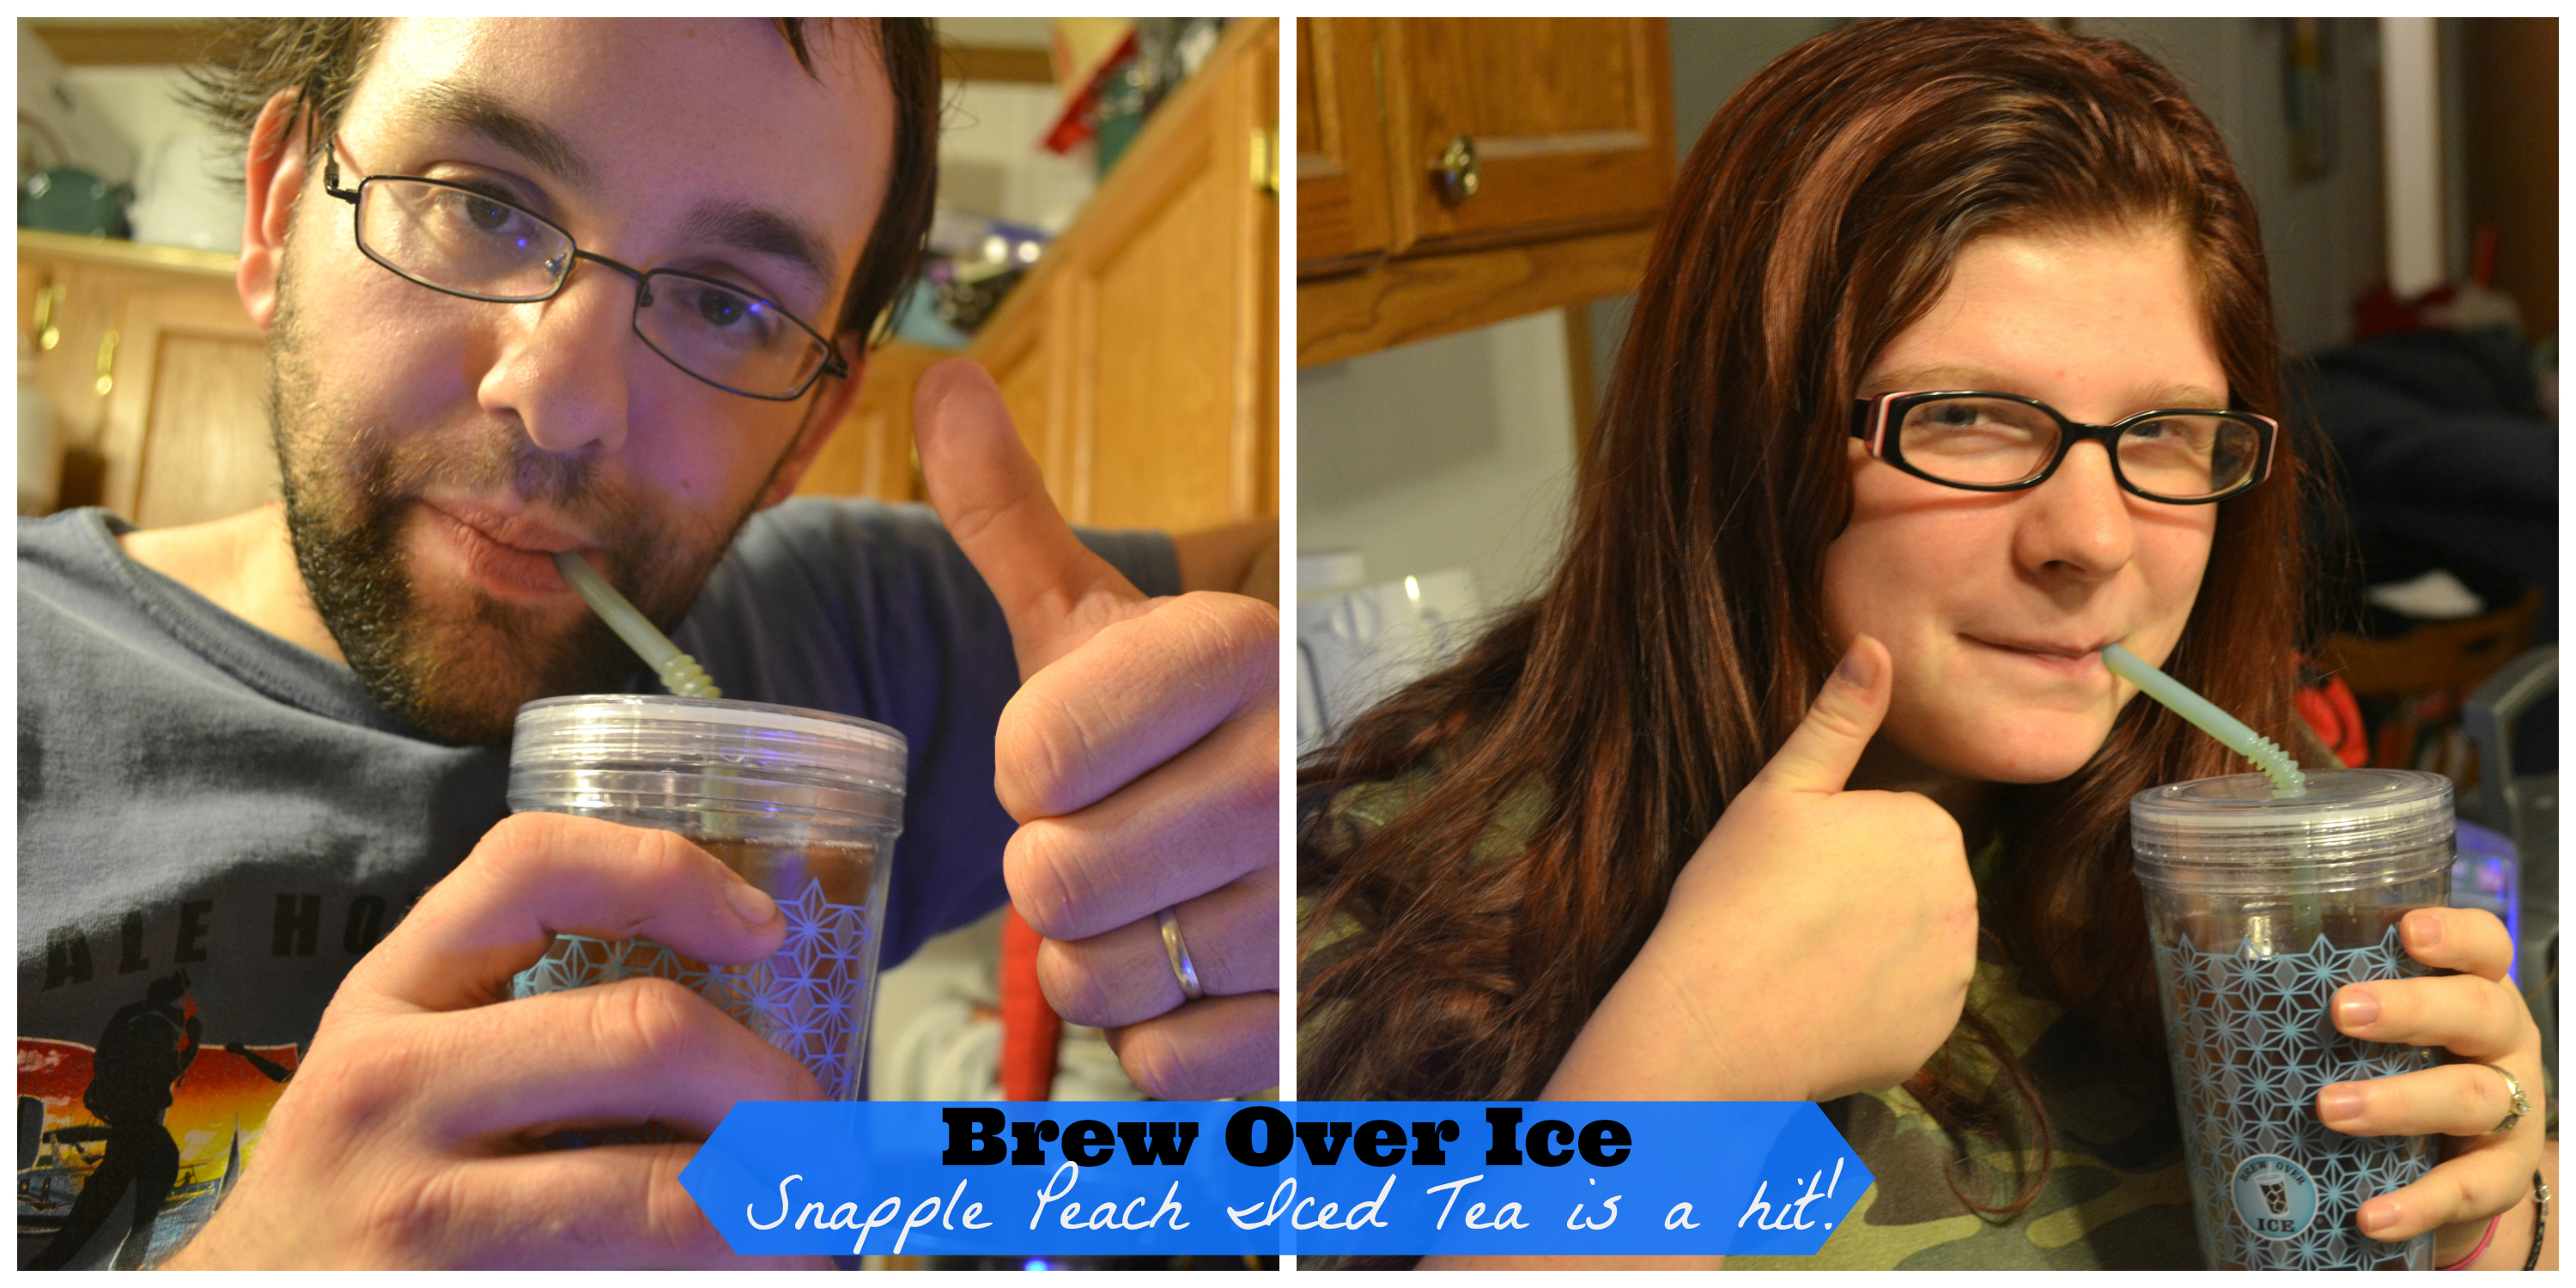 Brew Over Ice Review & Giveaway! (Ends 9/4) | Optimistic Mommy